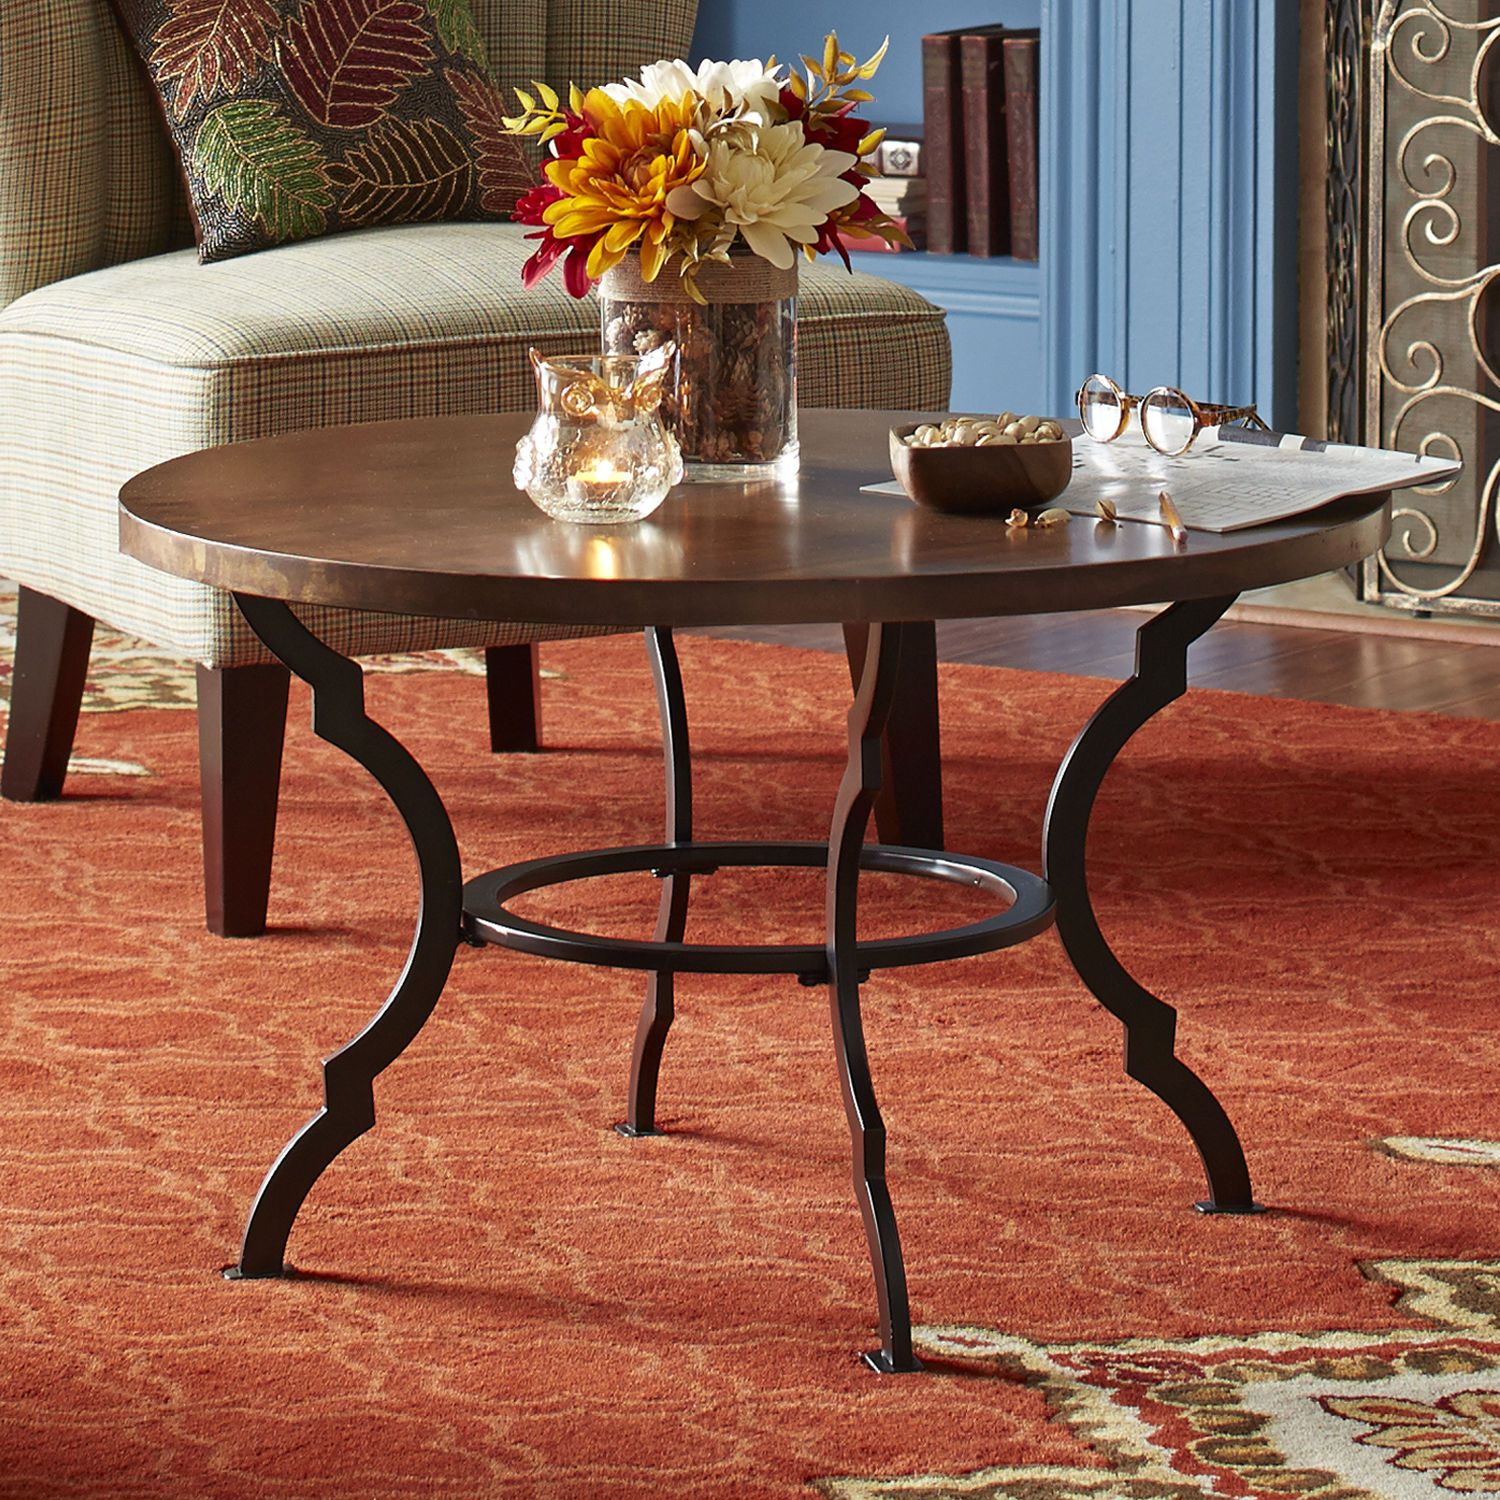 Colton Coffee Table Pier Imports Coffee Tables End Tables - Colton coffee table